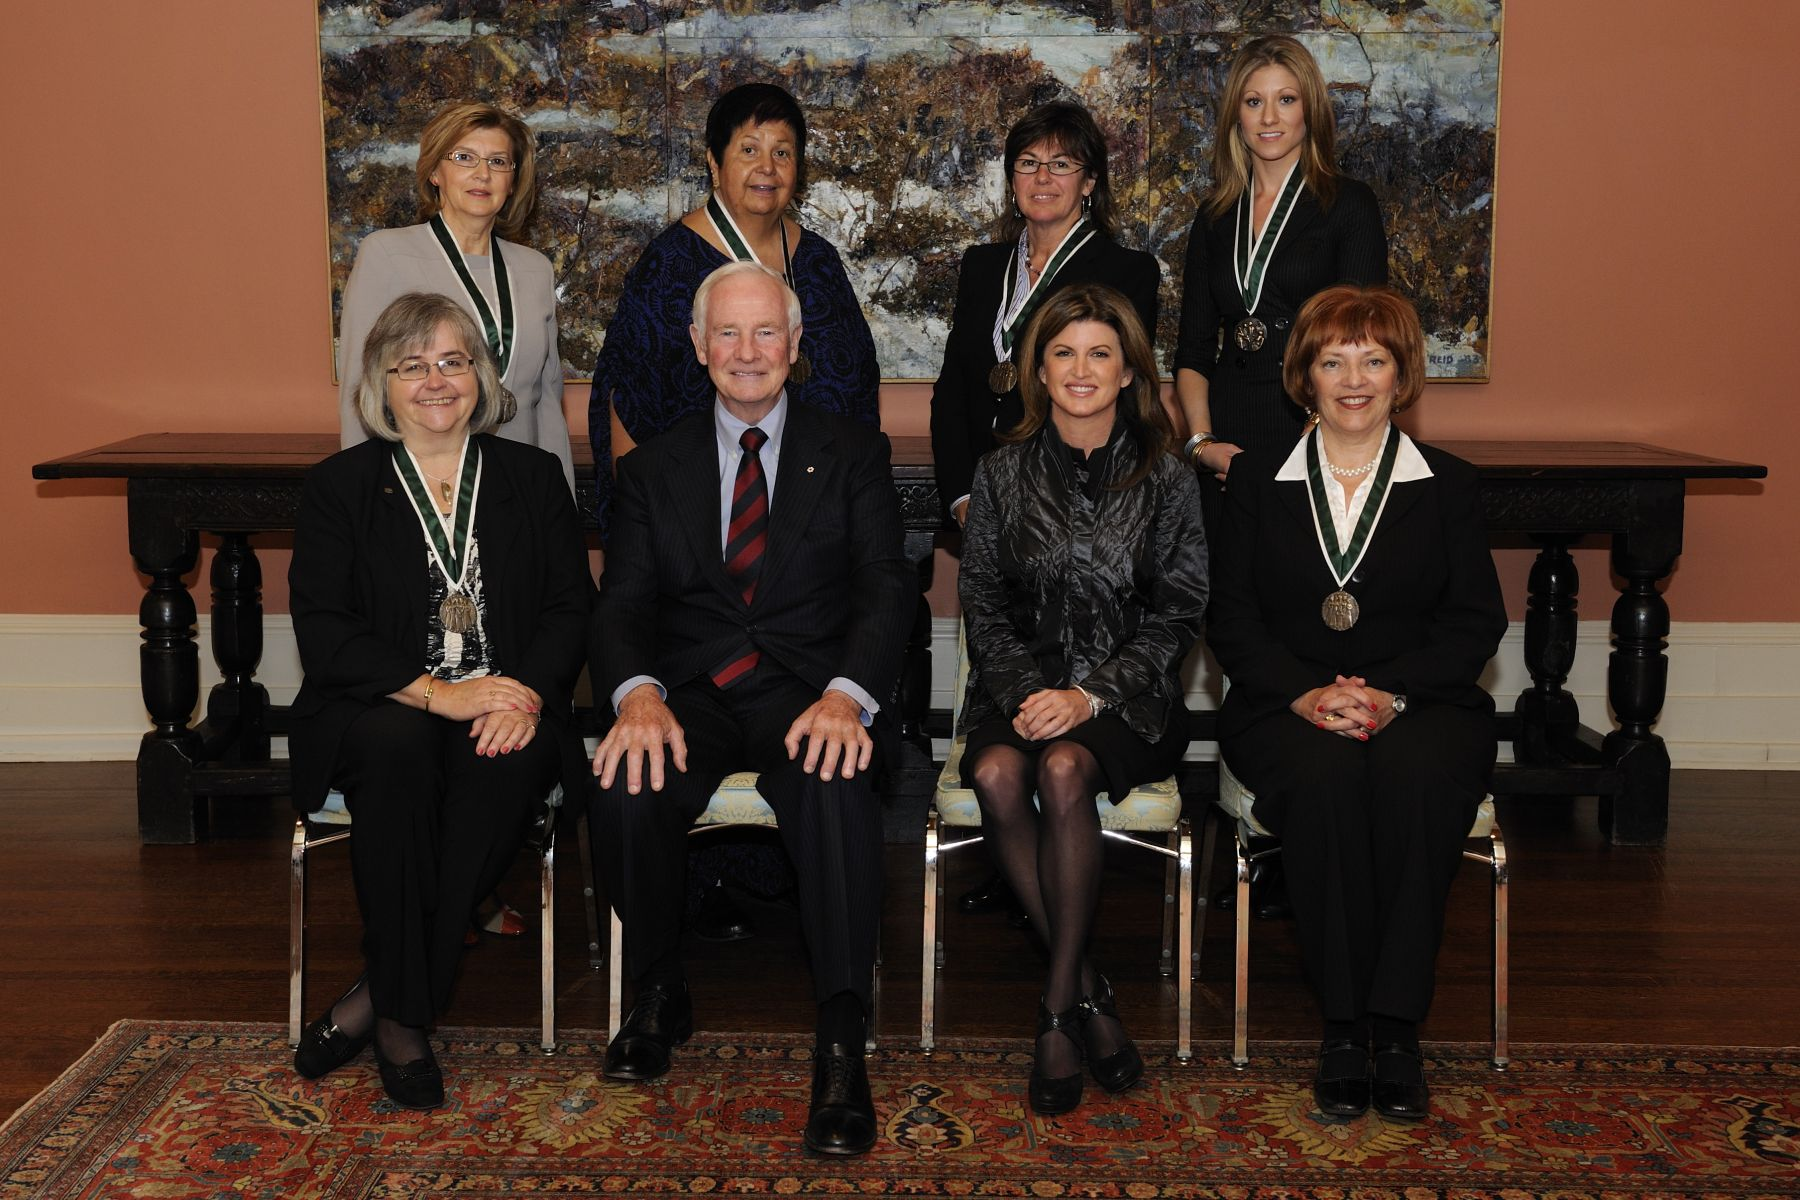 His Excellency the Right Honourable David Johnston, Governor General of Canada, presented the Governor General's Awards in commemoration of the Persons Case to six laureates during a ceremony at Rideau Hall.